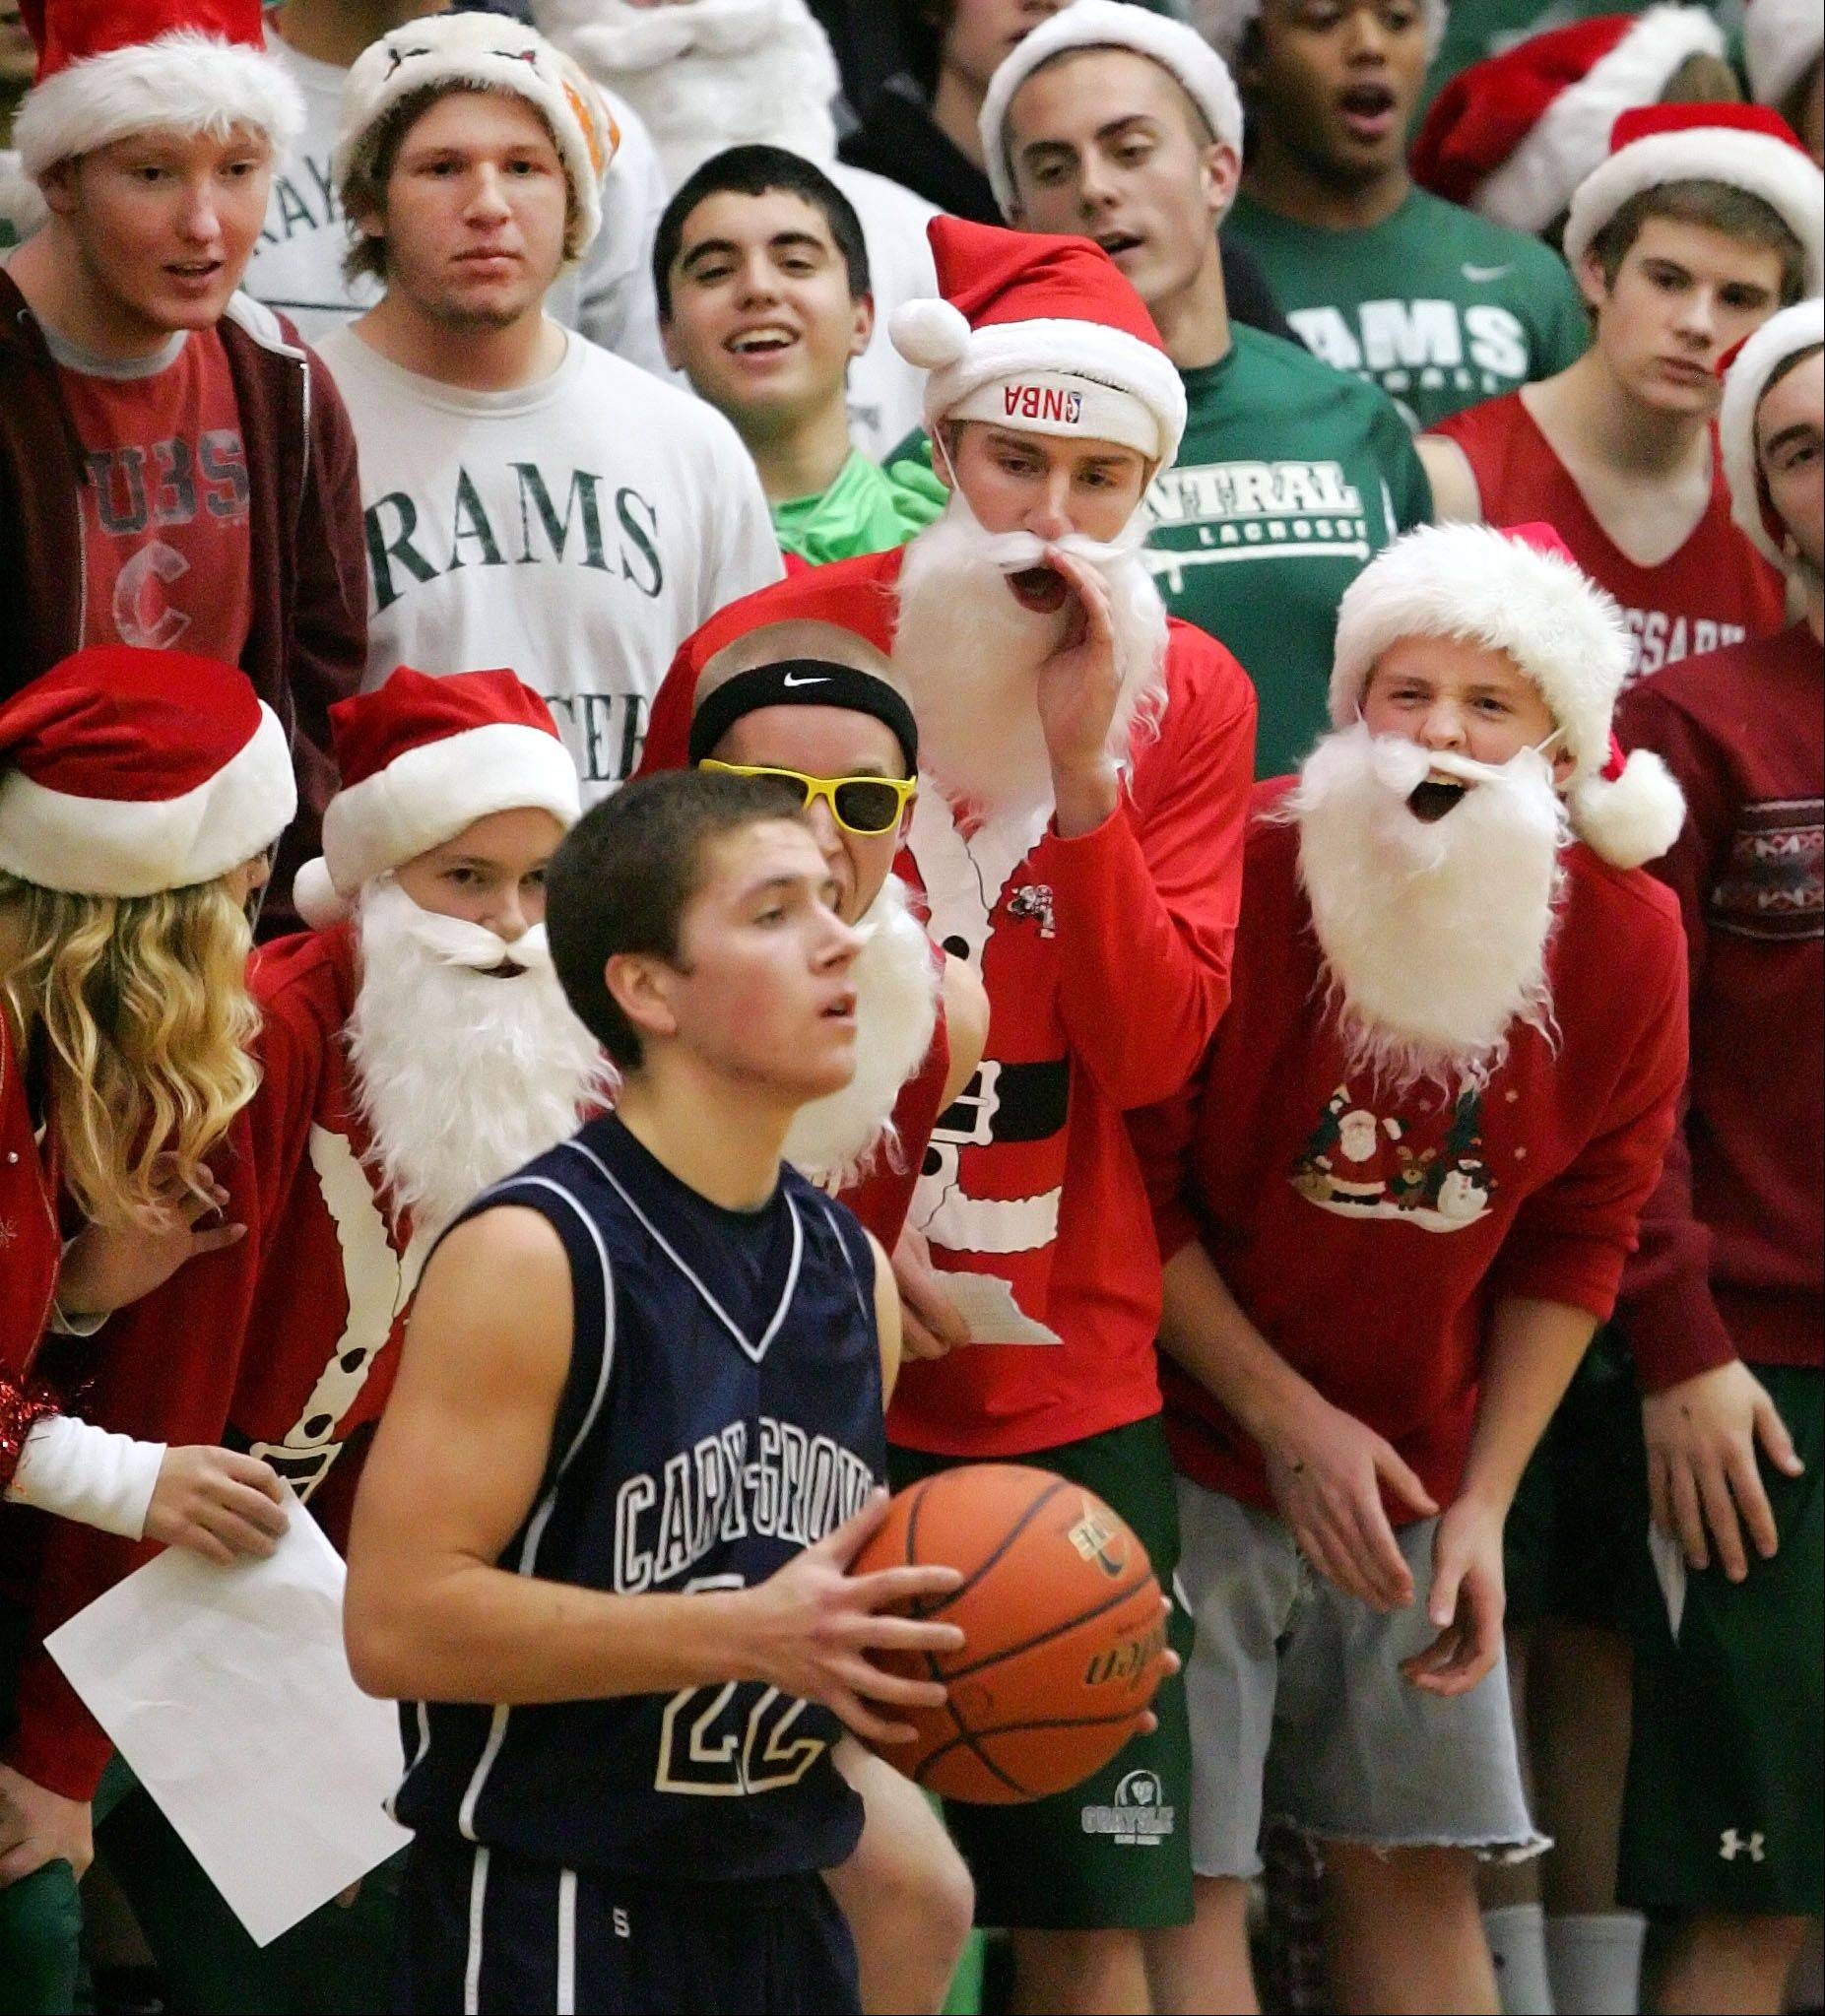 Grayslake Central fans dressed in Santa costumes jeer Cary-Grove's Matt Motzel as he inbounds the ball.